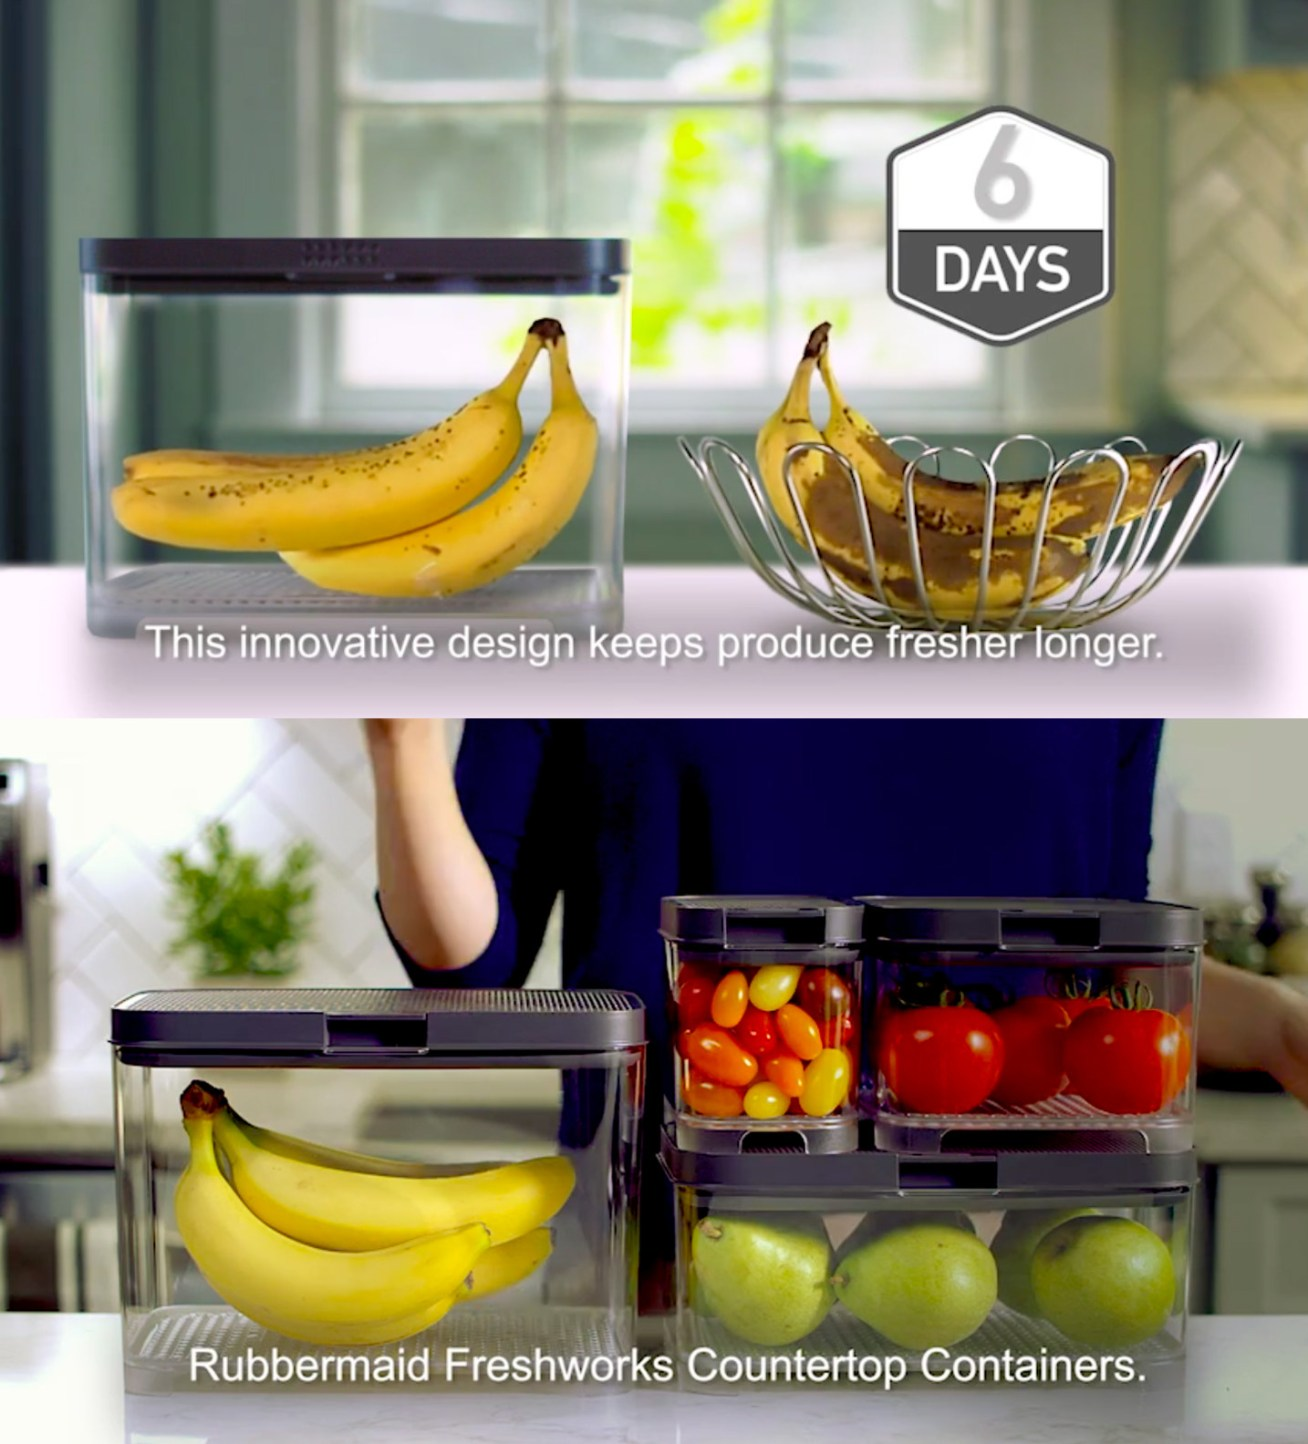 "Now, I haven't gotten my hands on these to test them out yet, but I promise I will! Based on the early reviews, it seems like they're pretty darn good... Promising review: ""As lovely as it looks, the day of the fruit bowl is over. With stainless steel kitchens this not only looks great but the savings of fresher longer makes perfect sense. I bought one and found it works so well and shows off produce so clearly and beautifully that I went back and bought three more."" —LazyDaisyGet them from Bed Bath & Beyond: the banana size for .99, the medium tomato size for .99, and a set of four of the smallest tomato size for .99. Or get a set with one medium tomato size and one small tomato size on Amazon for .79."